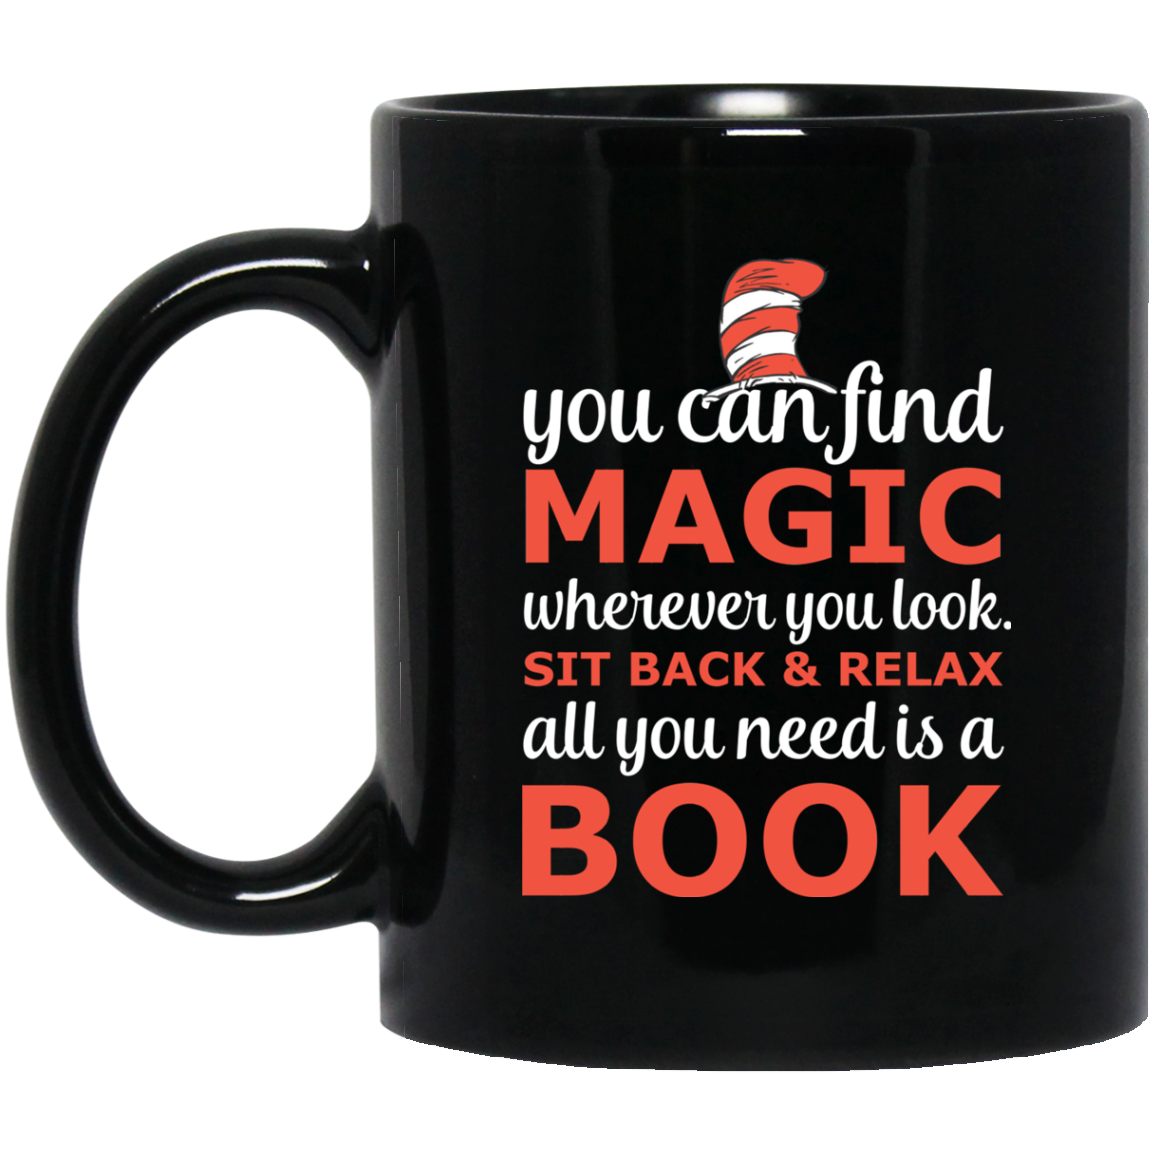 Dr. Seuss Mug You Can Find Magic Wherever You Look